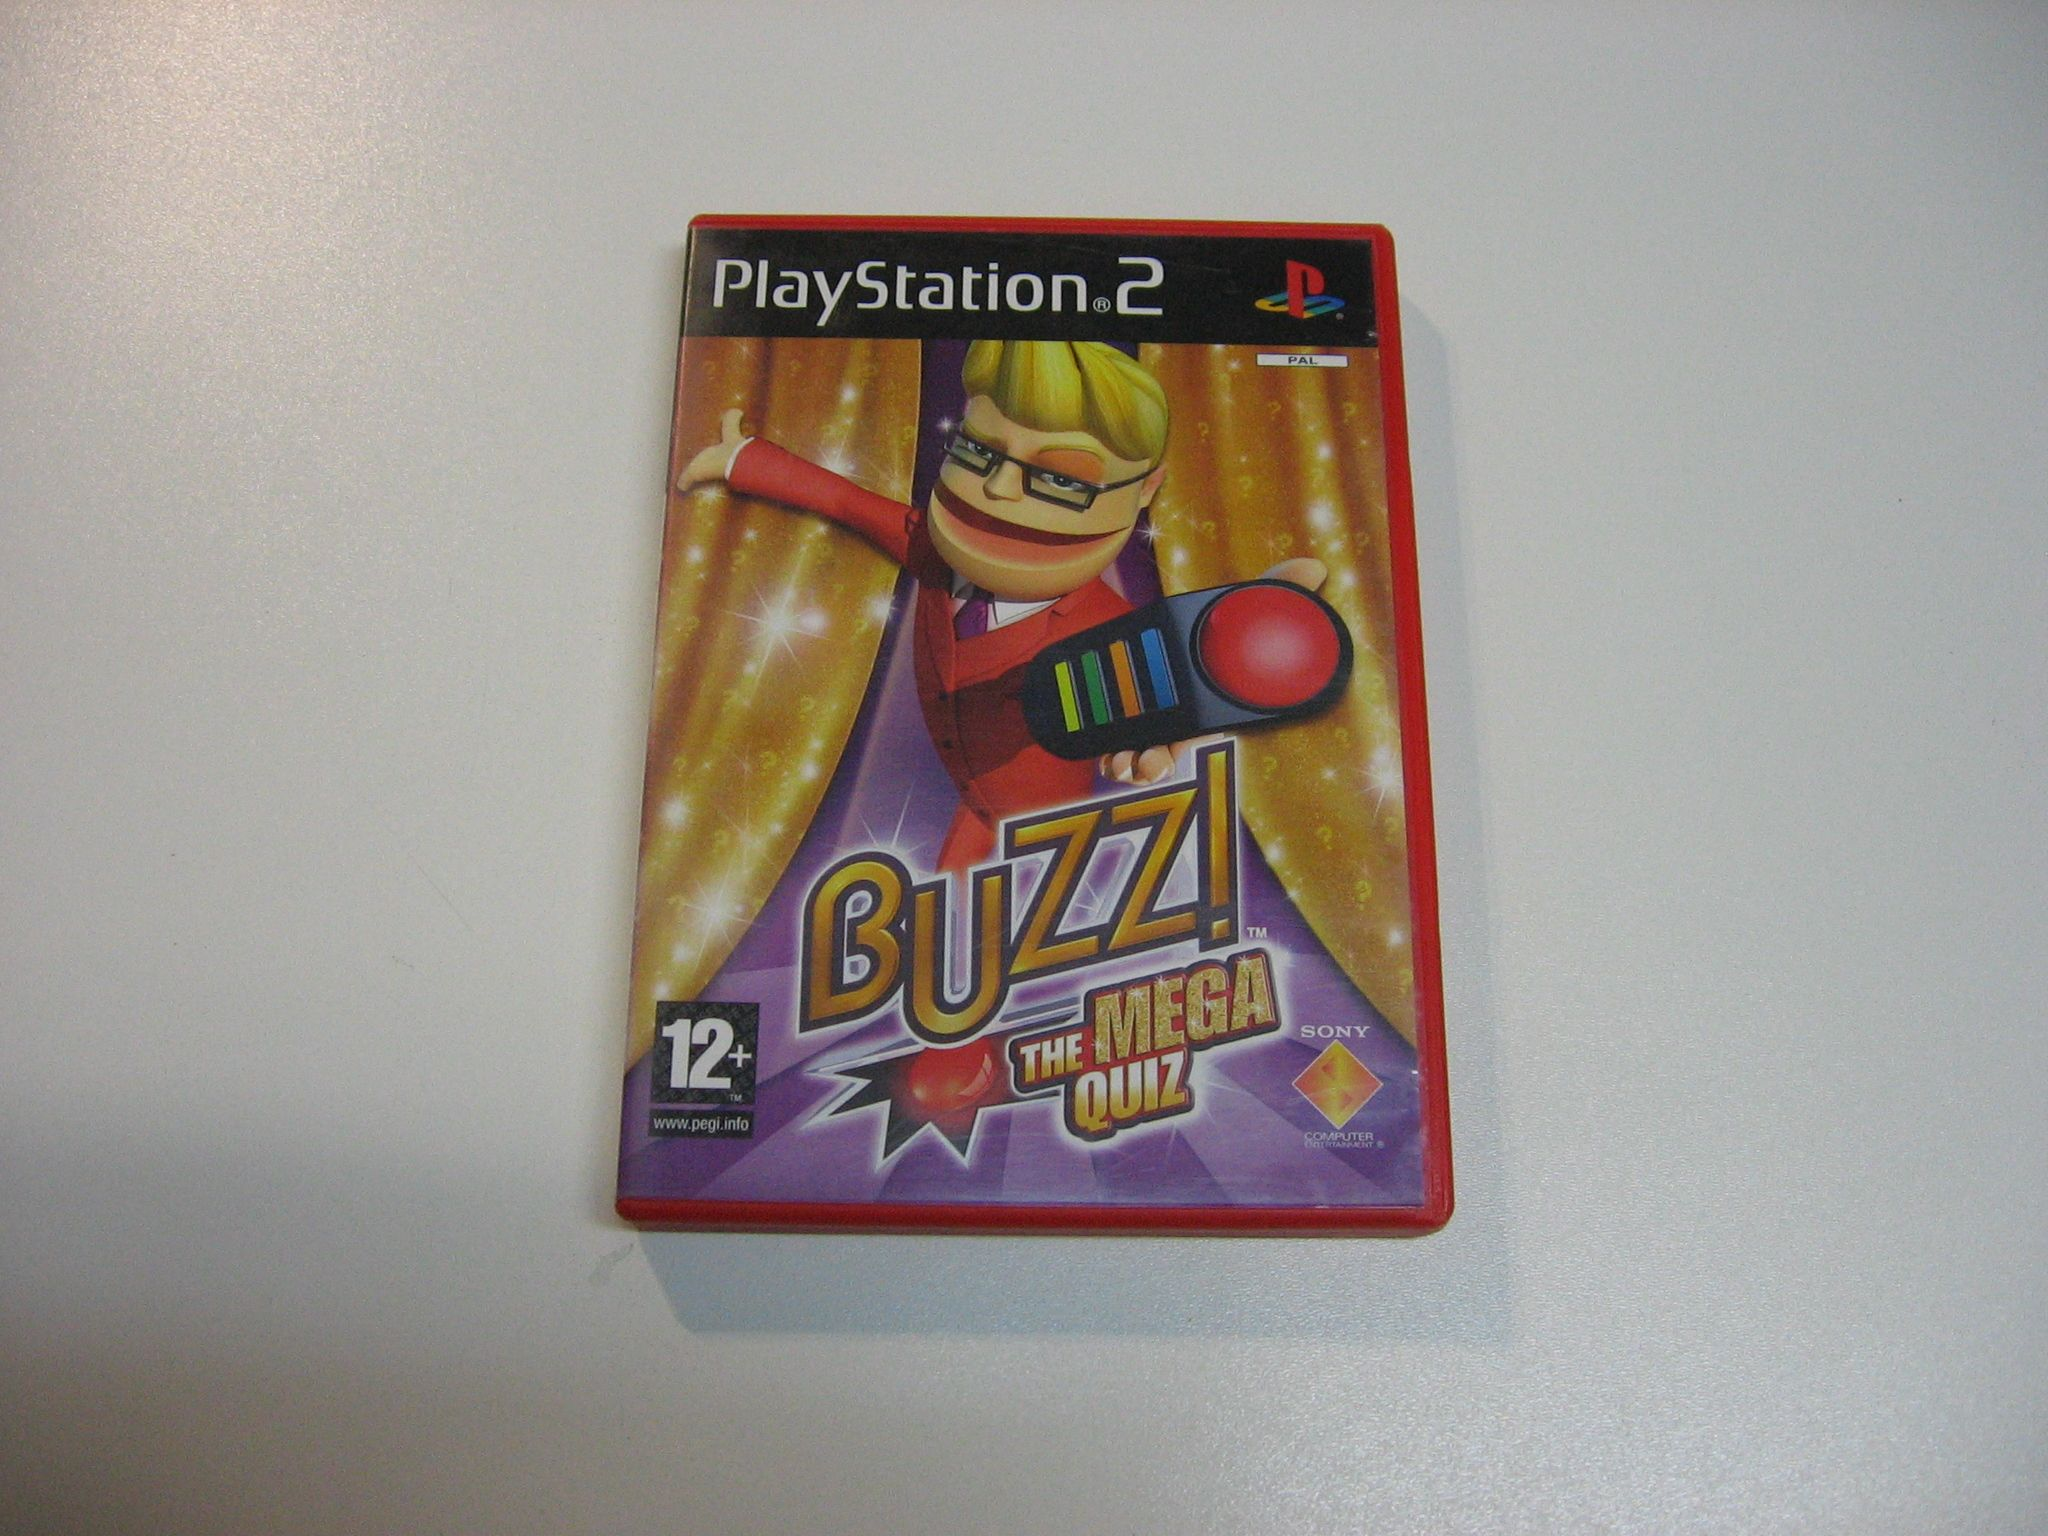 Buzz The Mega Quiz Gra Ps2 Opole 0697 Quiz Playstation 2 Playstation